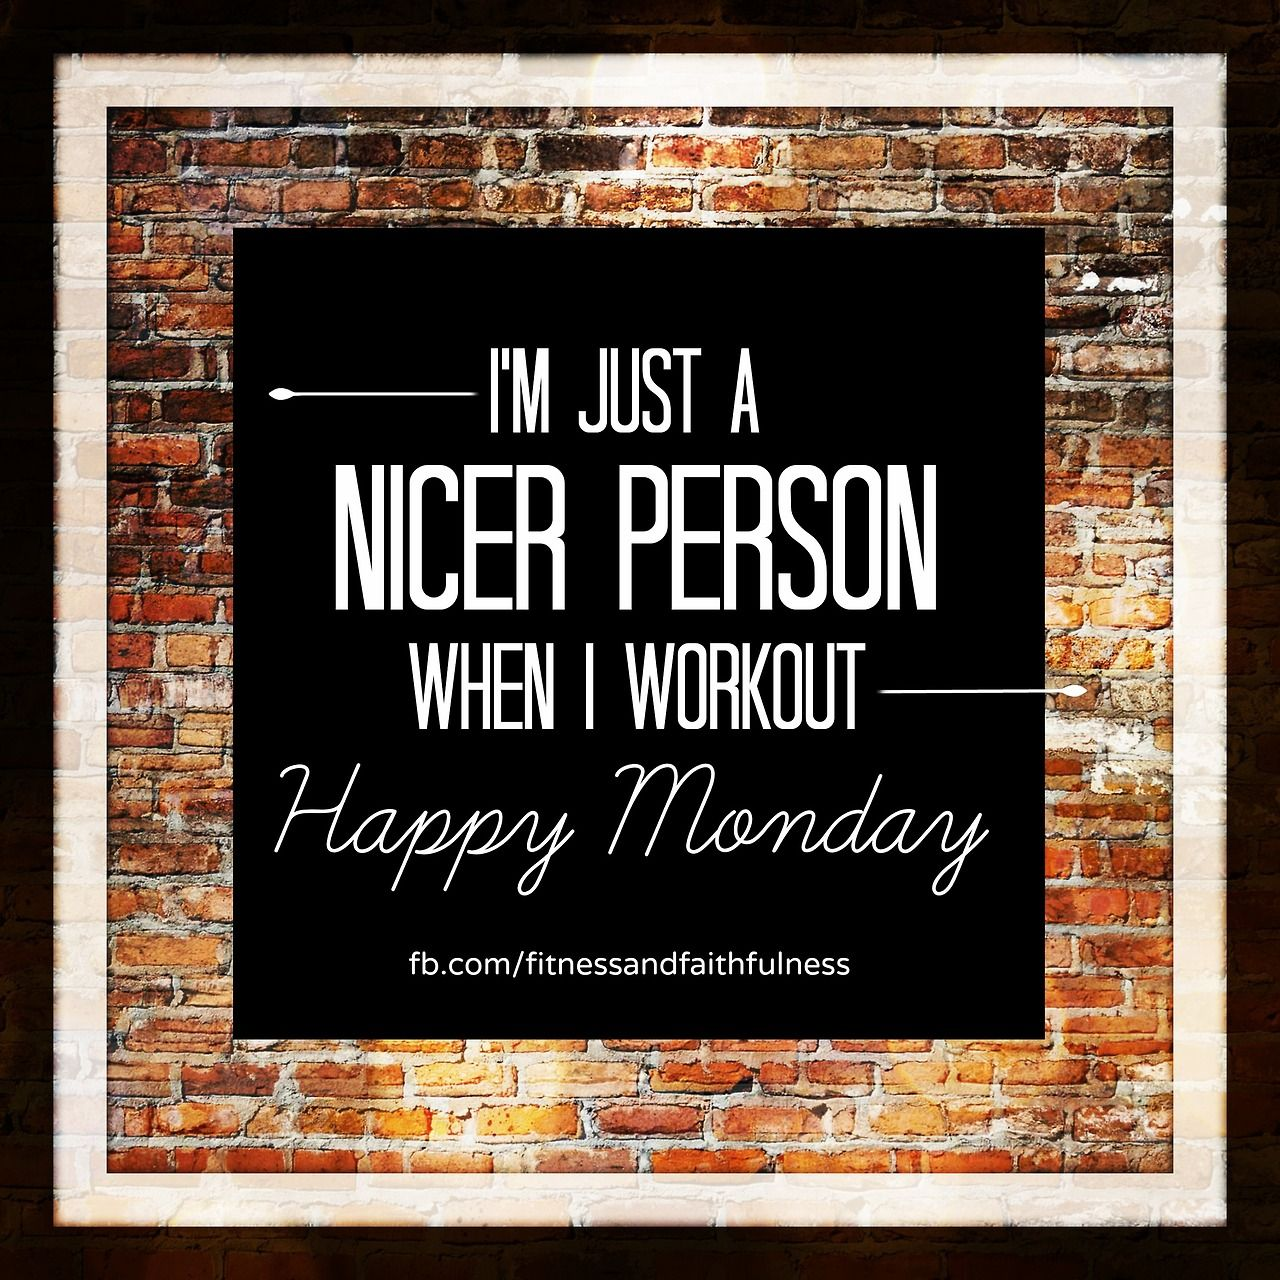 I'm just a NICER person when I workout. HAPPY MONDAY!